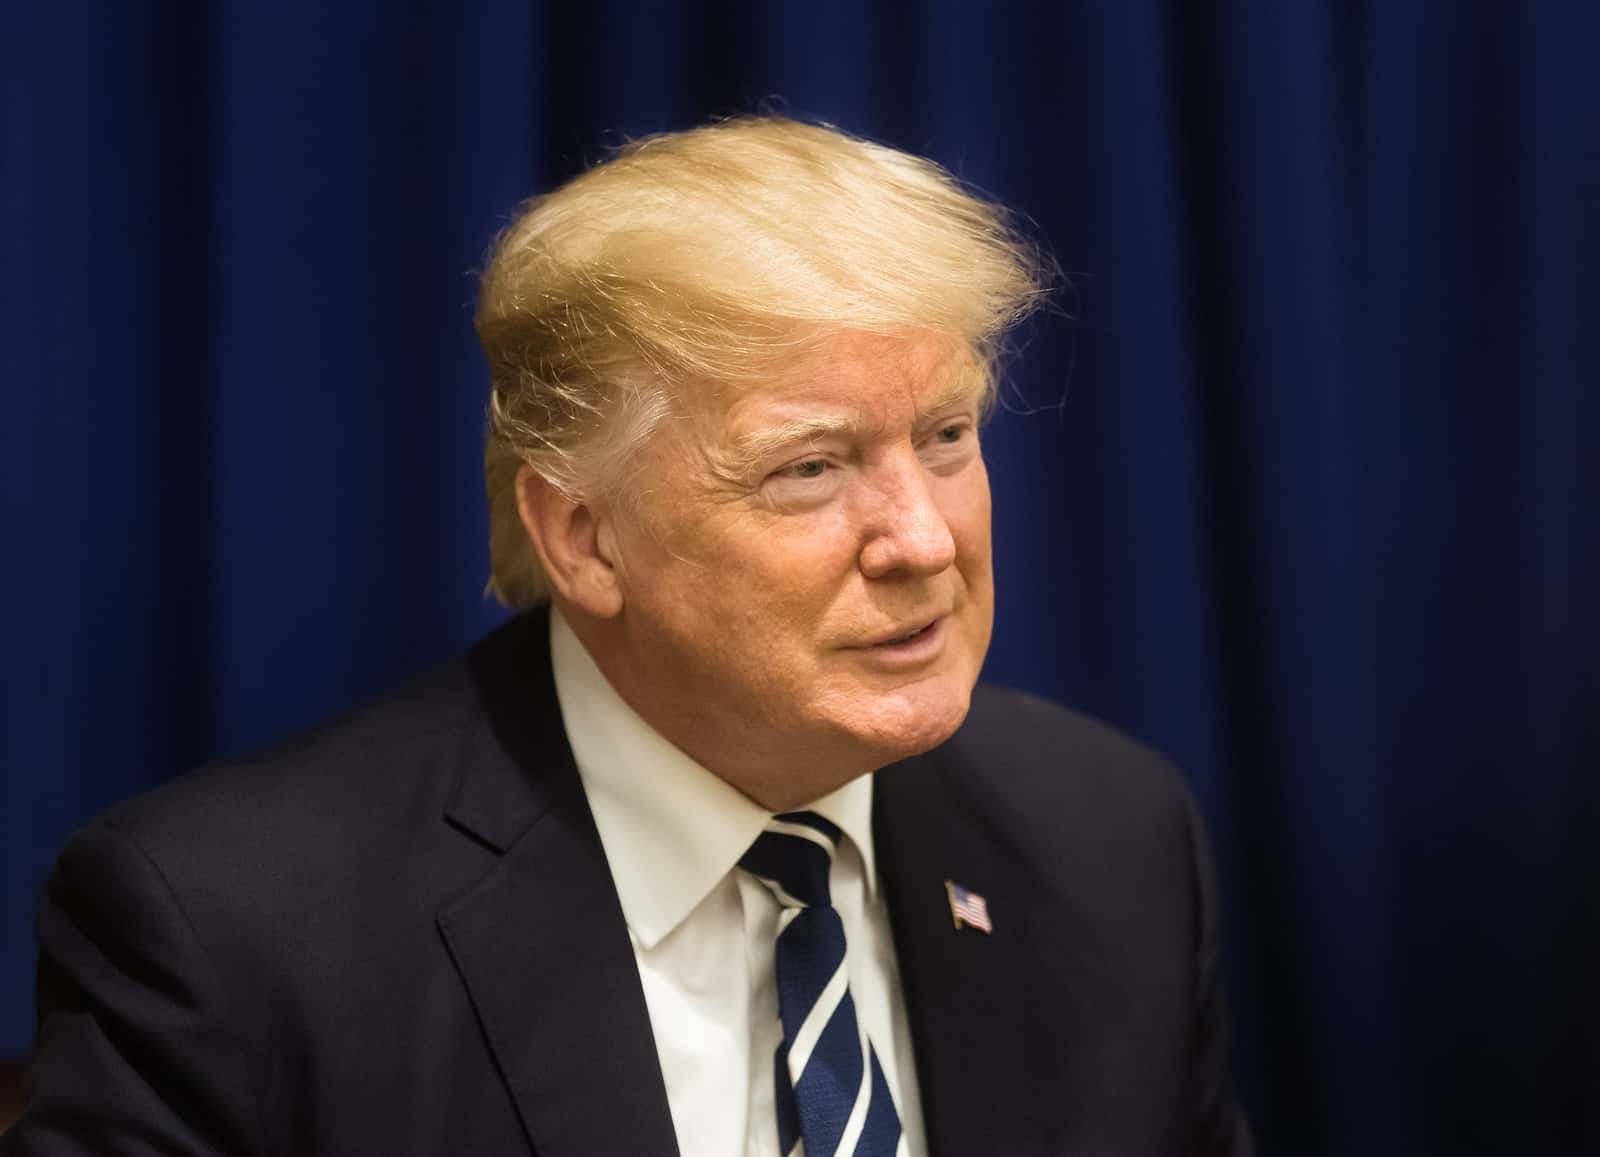 New Trump Tax Plan Creating Strong Demand for Self-Directed IRA Cryptocurrency Mining Investors, According to IRA Financial Group